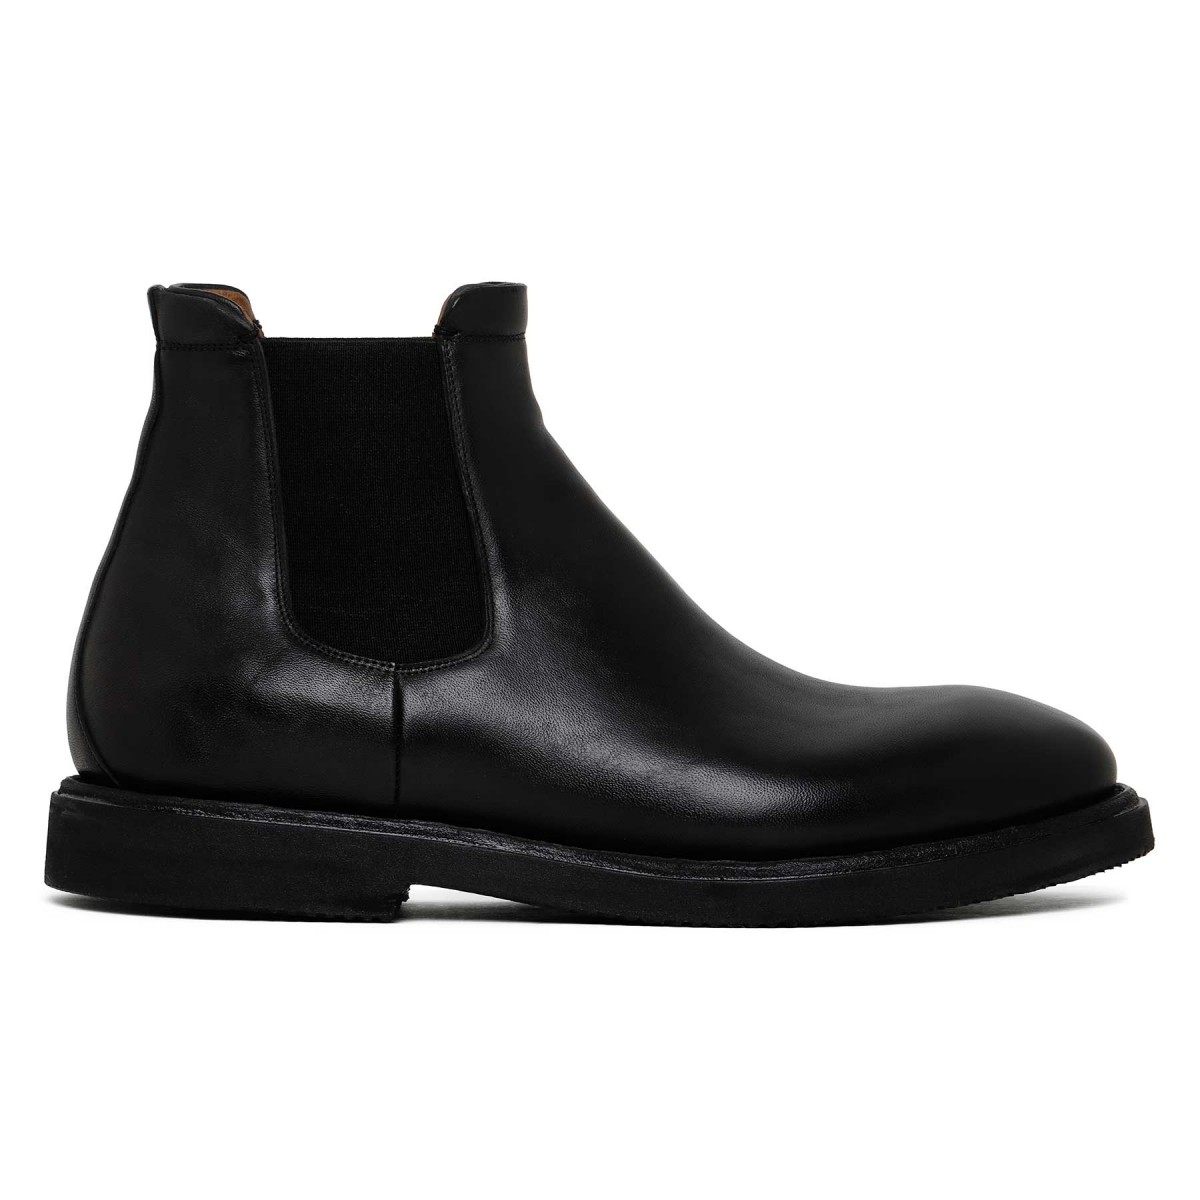 Black leather Beatles ankle boots